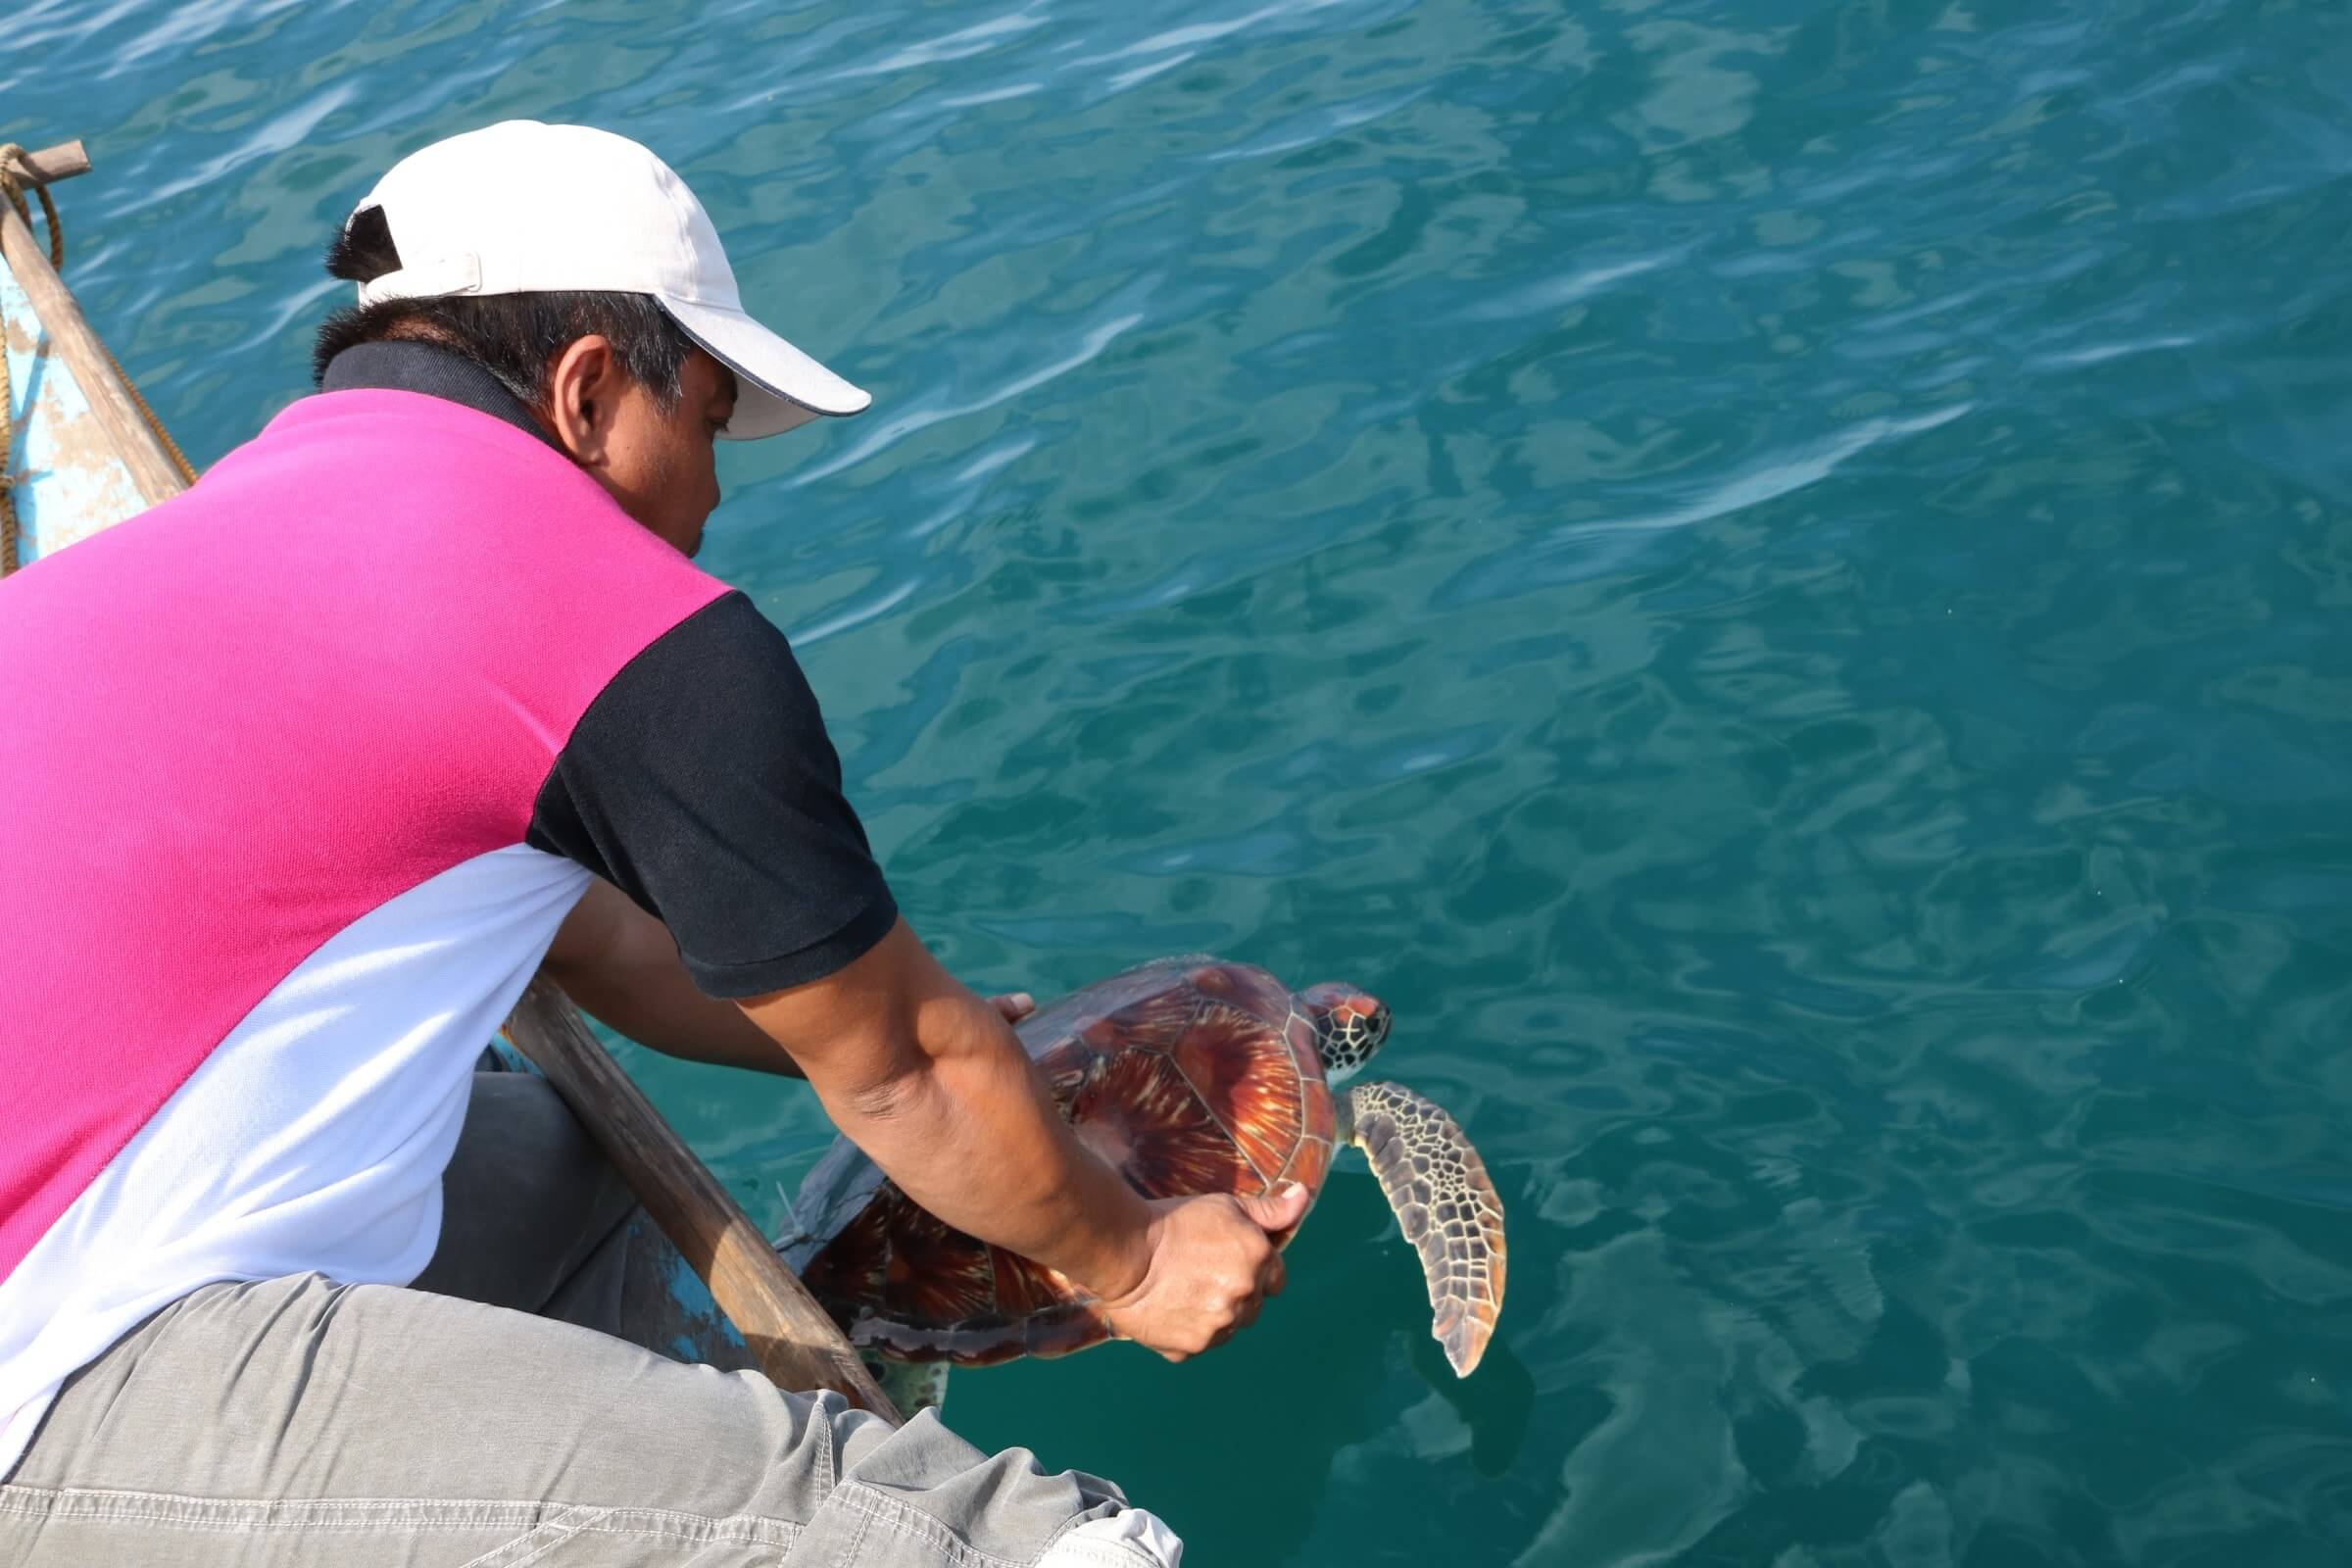 RELEASING THE SEA TURTLE TO ITS OWN ABODE